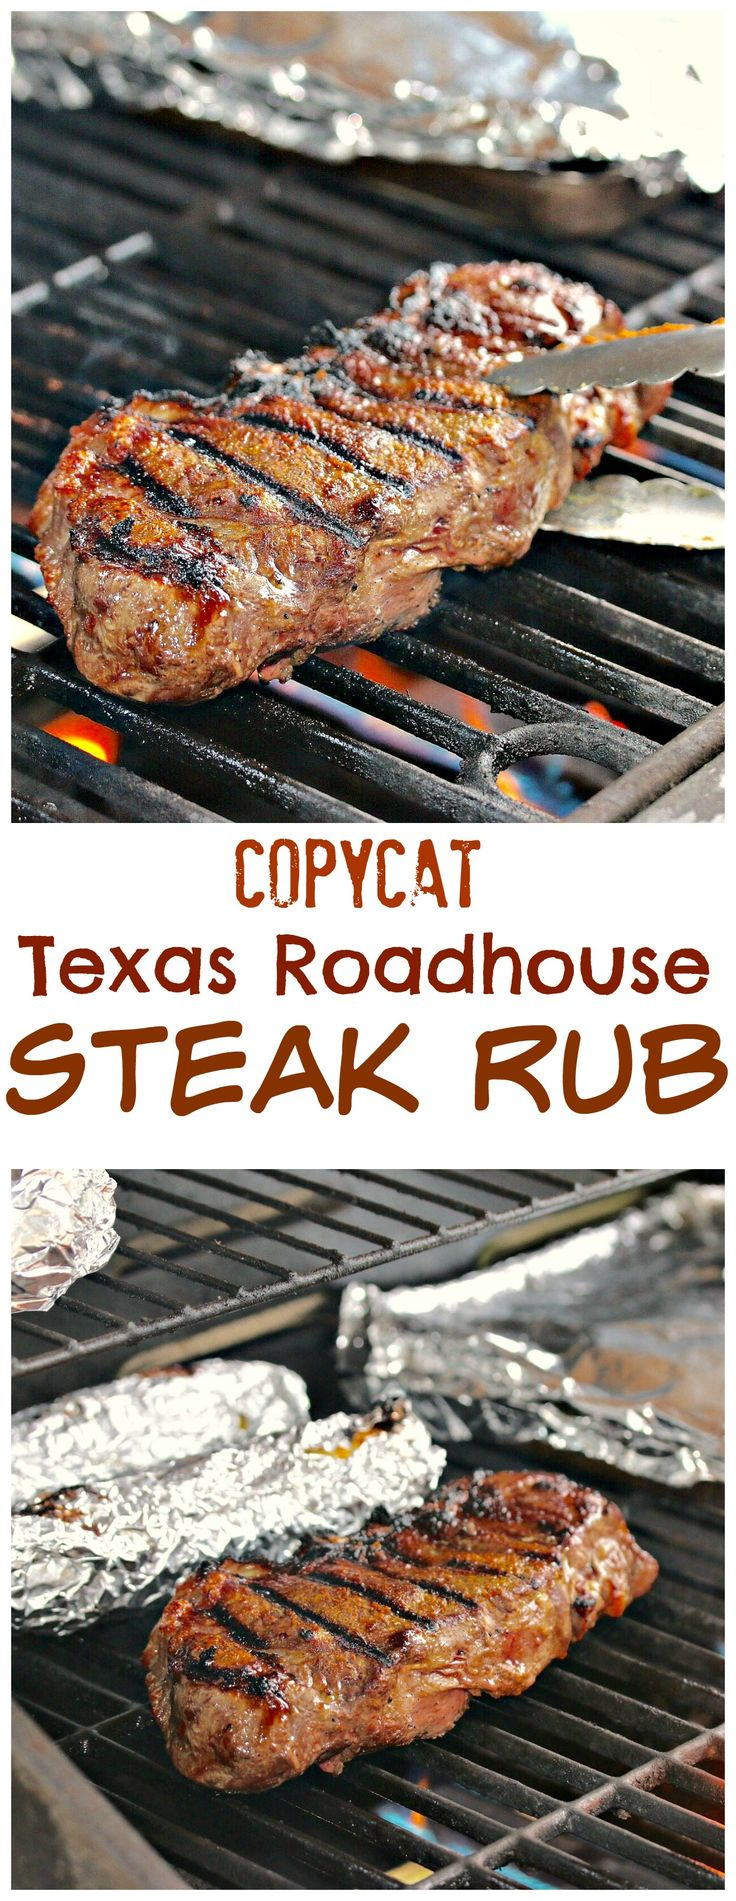 A simple combination of ingredients from this classic steakhouse that will bring out the best flavor in your next chicken or steak!